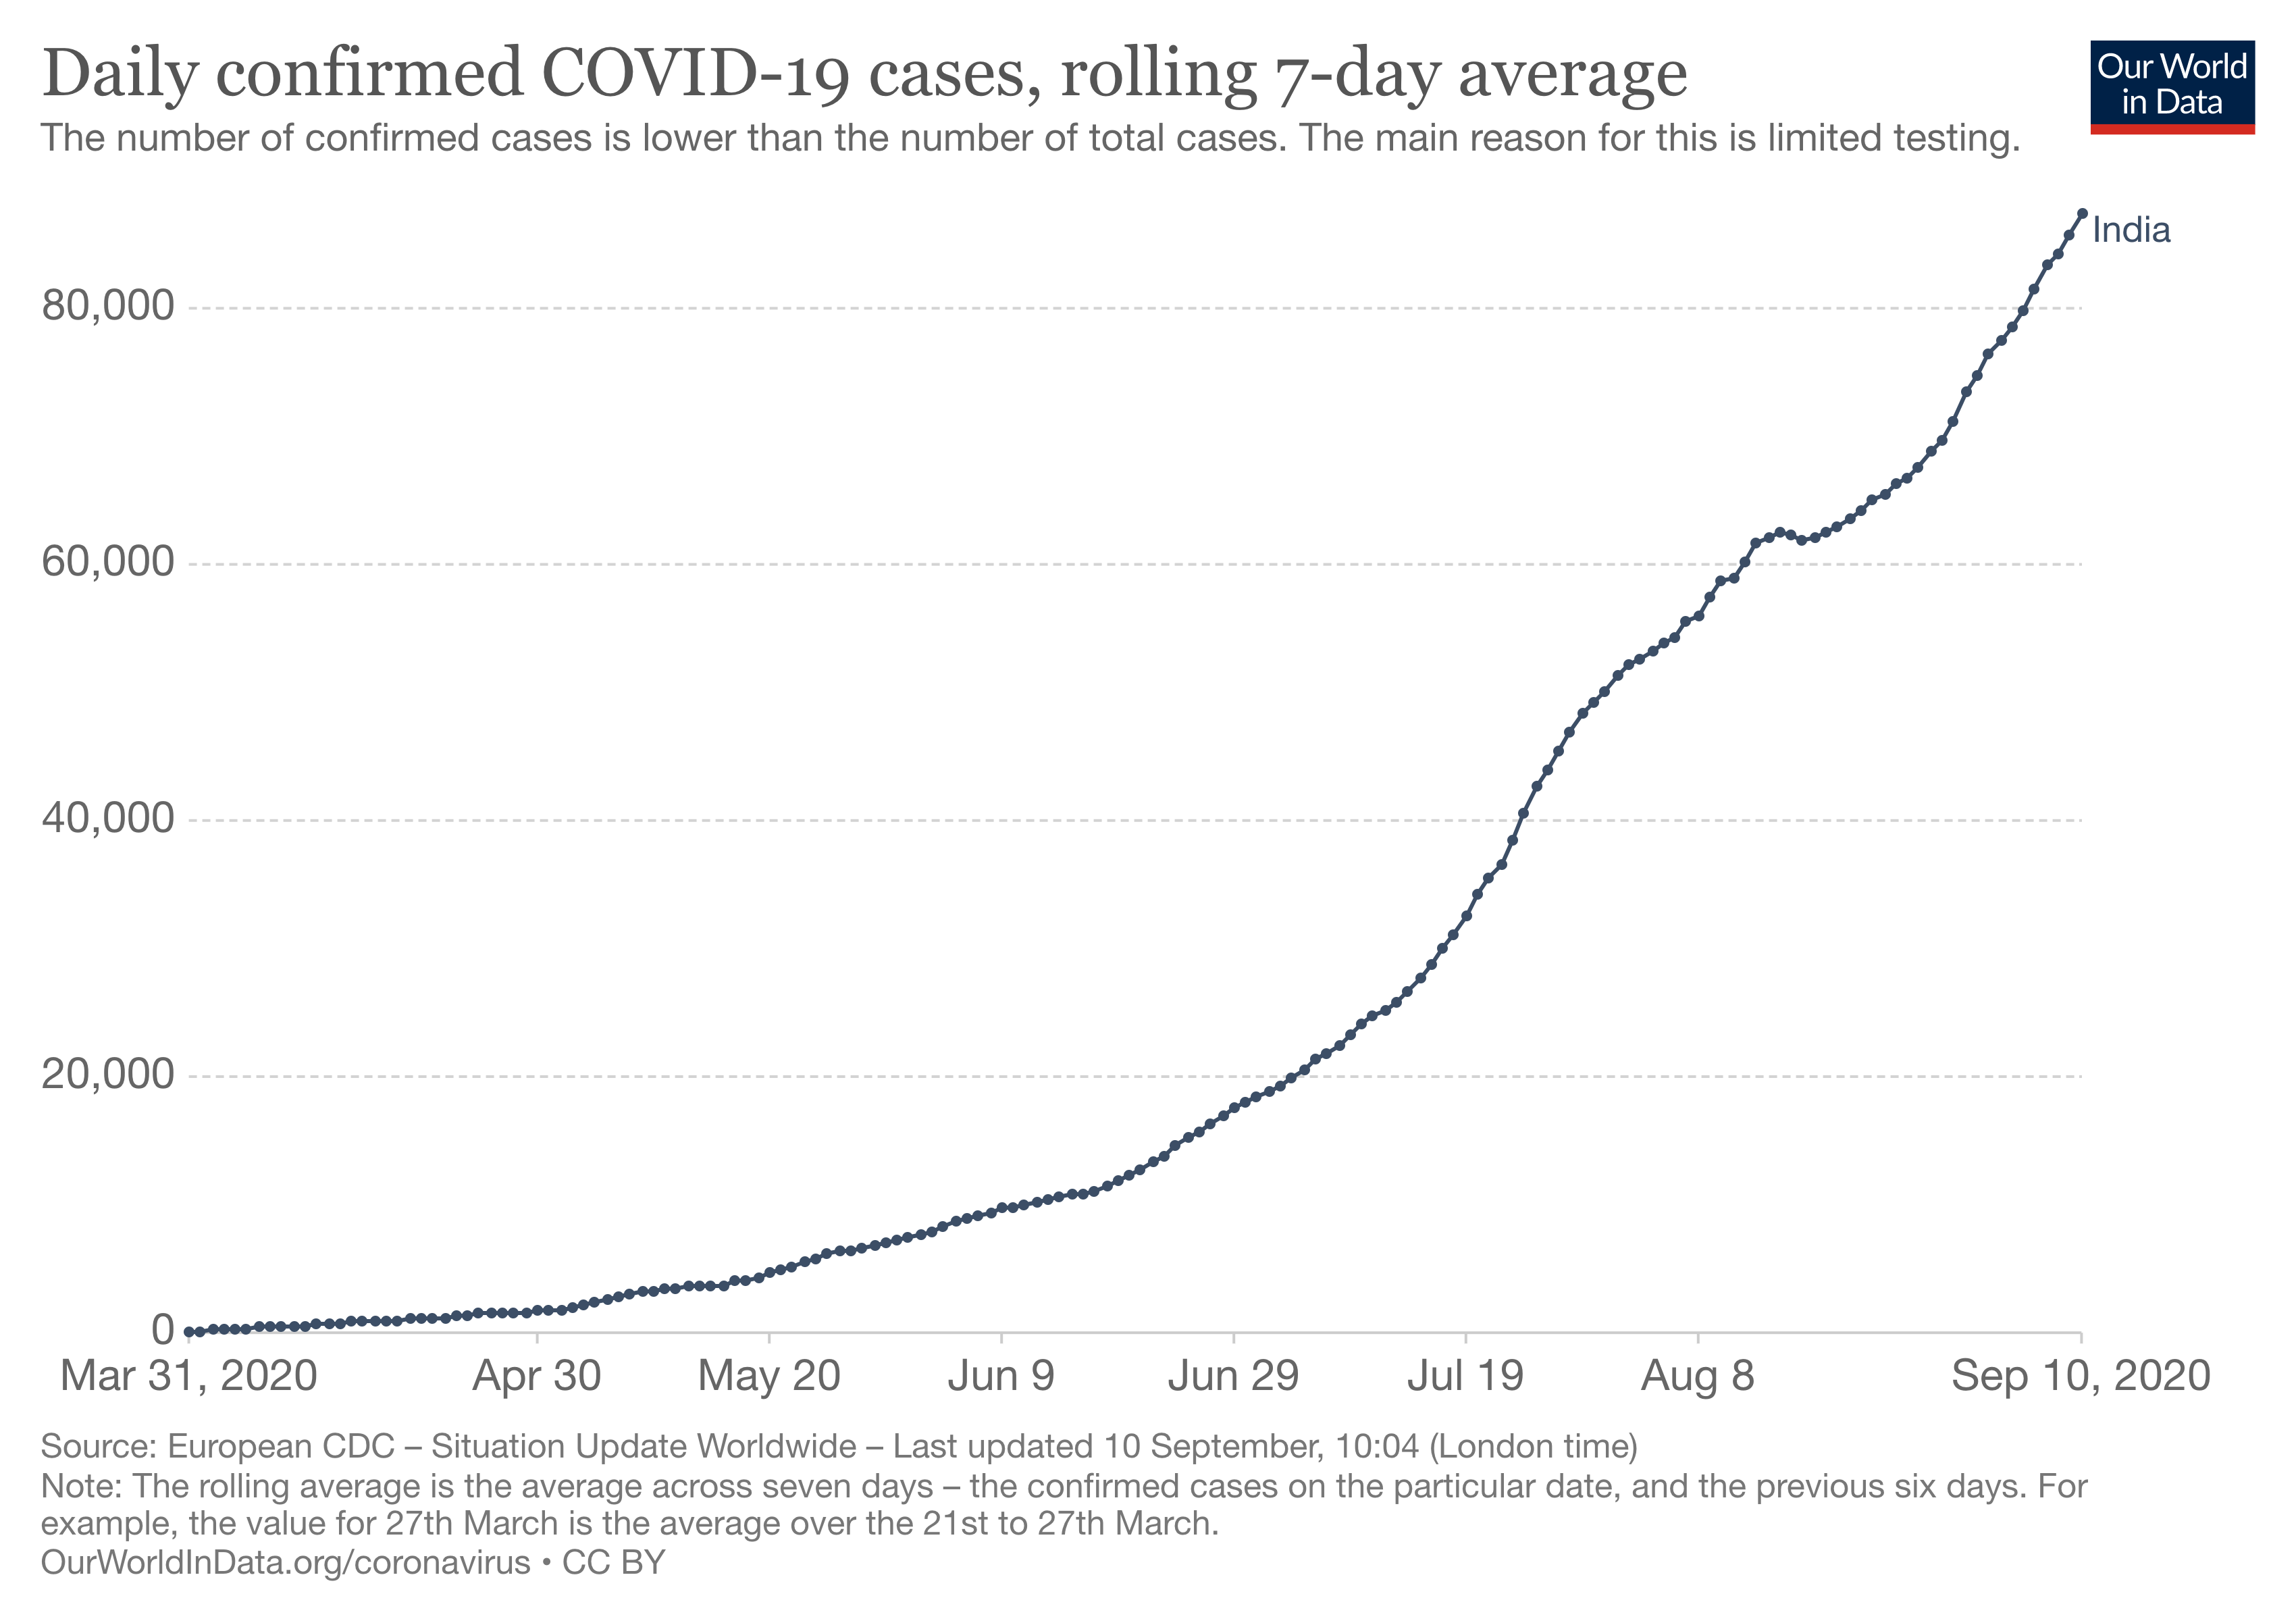 Was Lav Agarwal right in saying India's Covid-19 peak may never come?